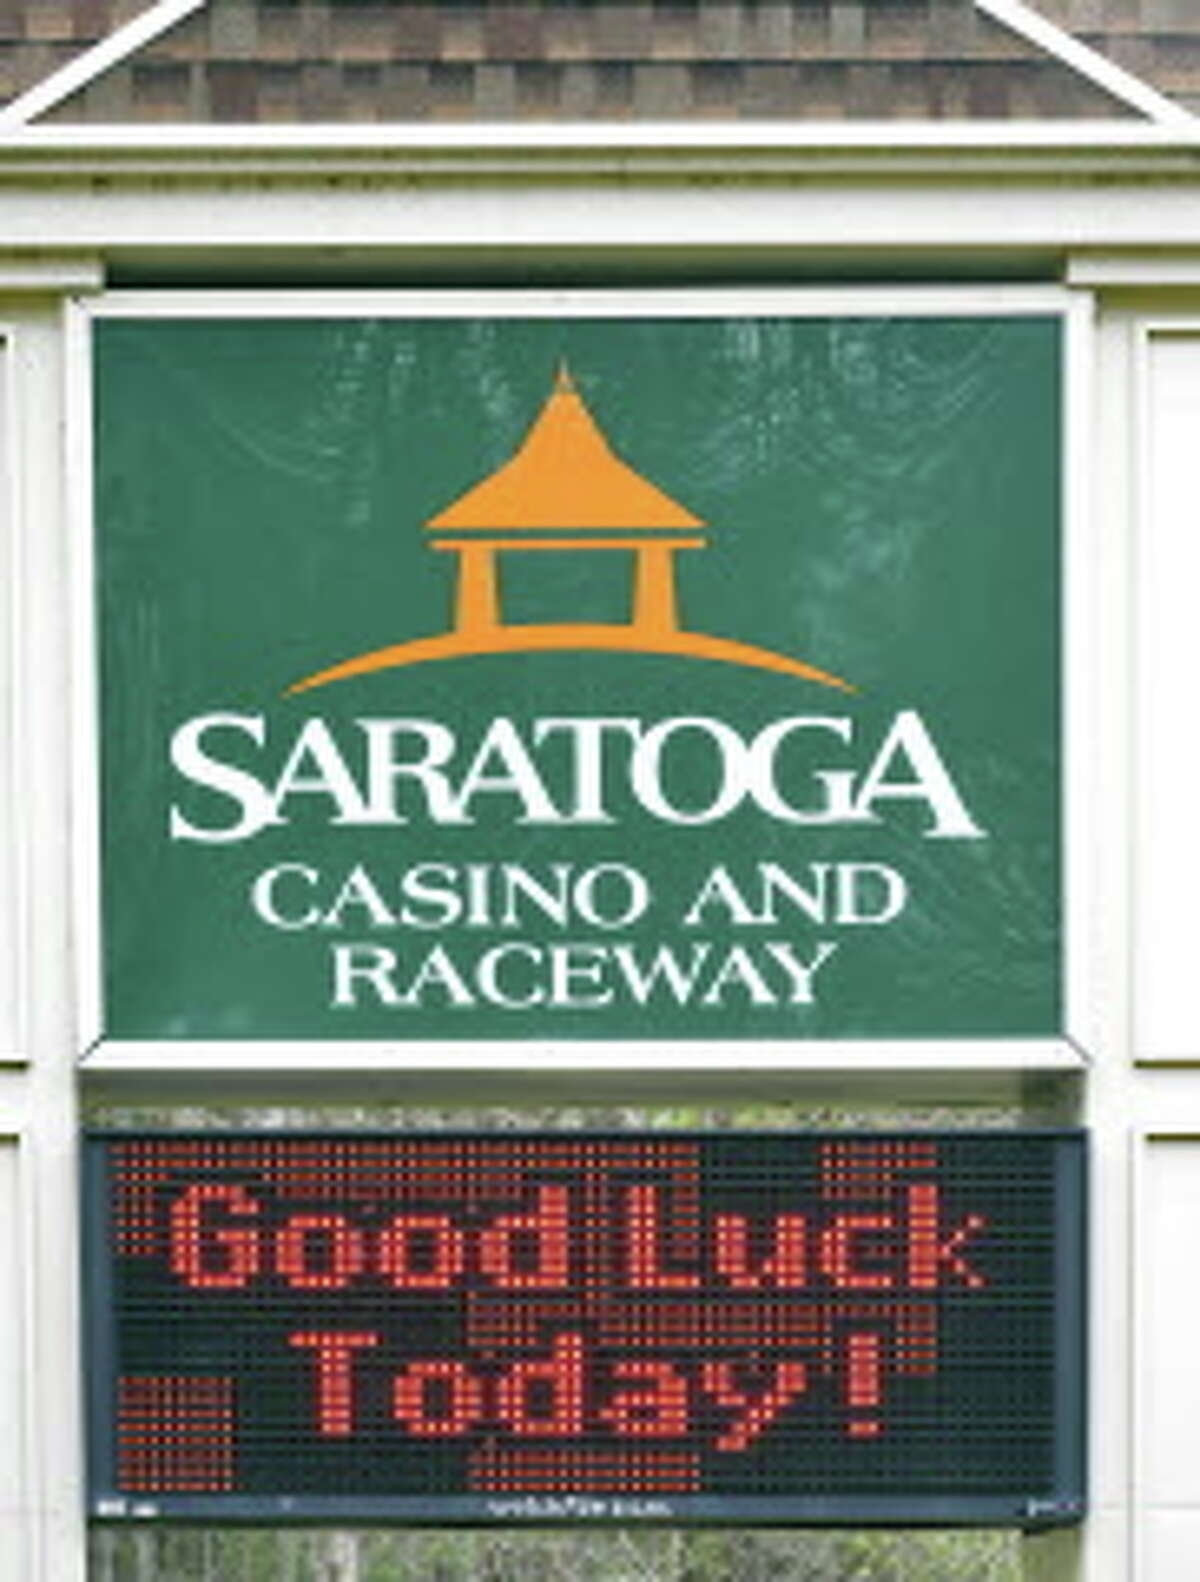 Sign at an entrance to Saratoga Casino and Raceway Tuesday April 22, 2014, in Saratoga Springs, NY. (John Carl D'Annibale / Times Union)